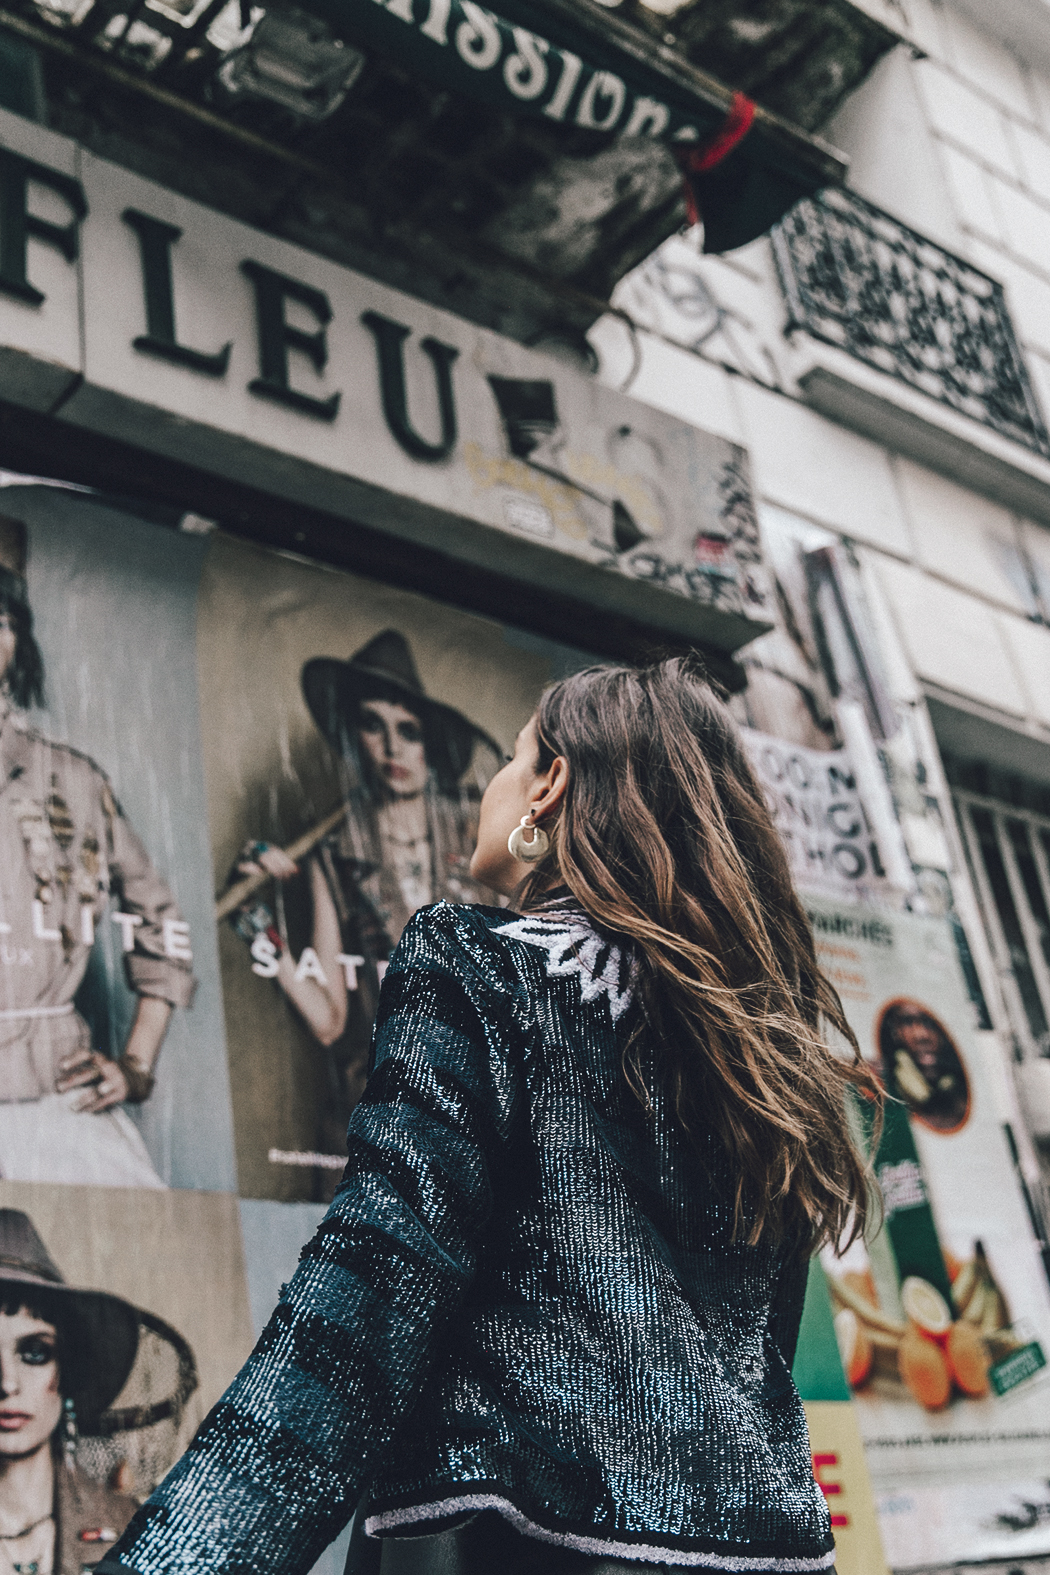 Montmartre-Moulin_Rouge-Zadig_Voltiere-Sequins_Jacket-Leather_Trousers-Outfit-Paris-Street_Style-35